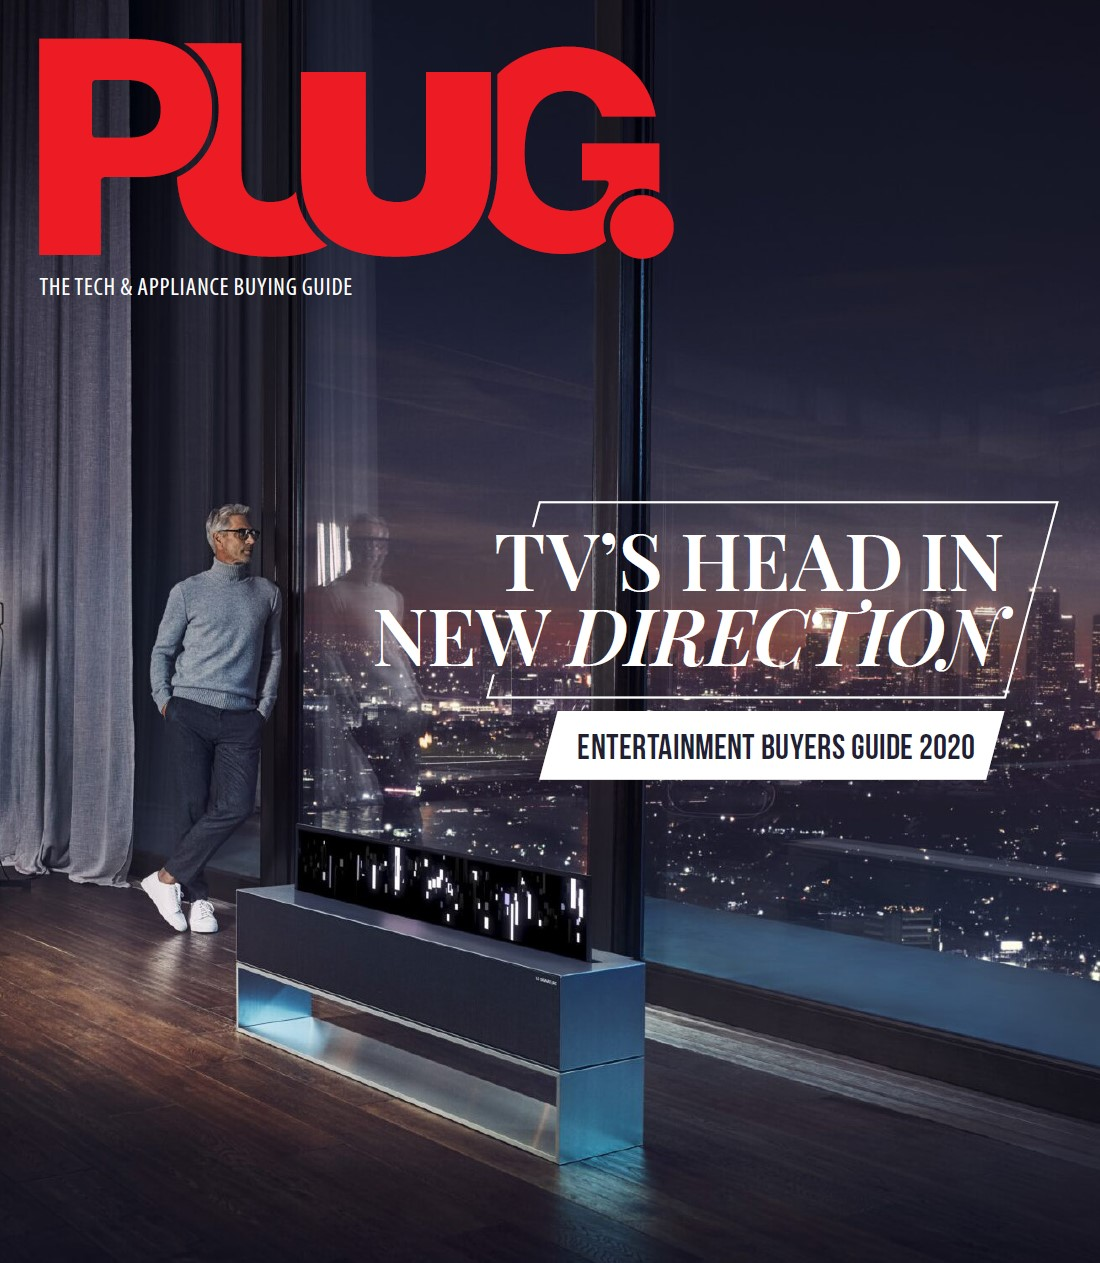 Plug TV Buyers Guide 2020  2020 TV & Home Entertainment Buyers Guide Exposed To Over 35 Million